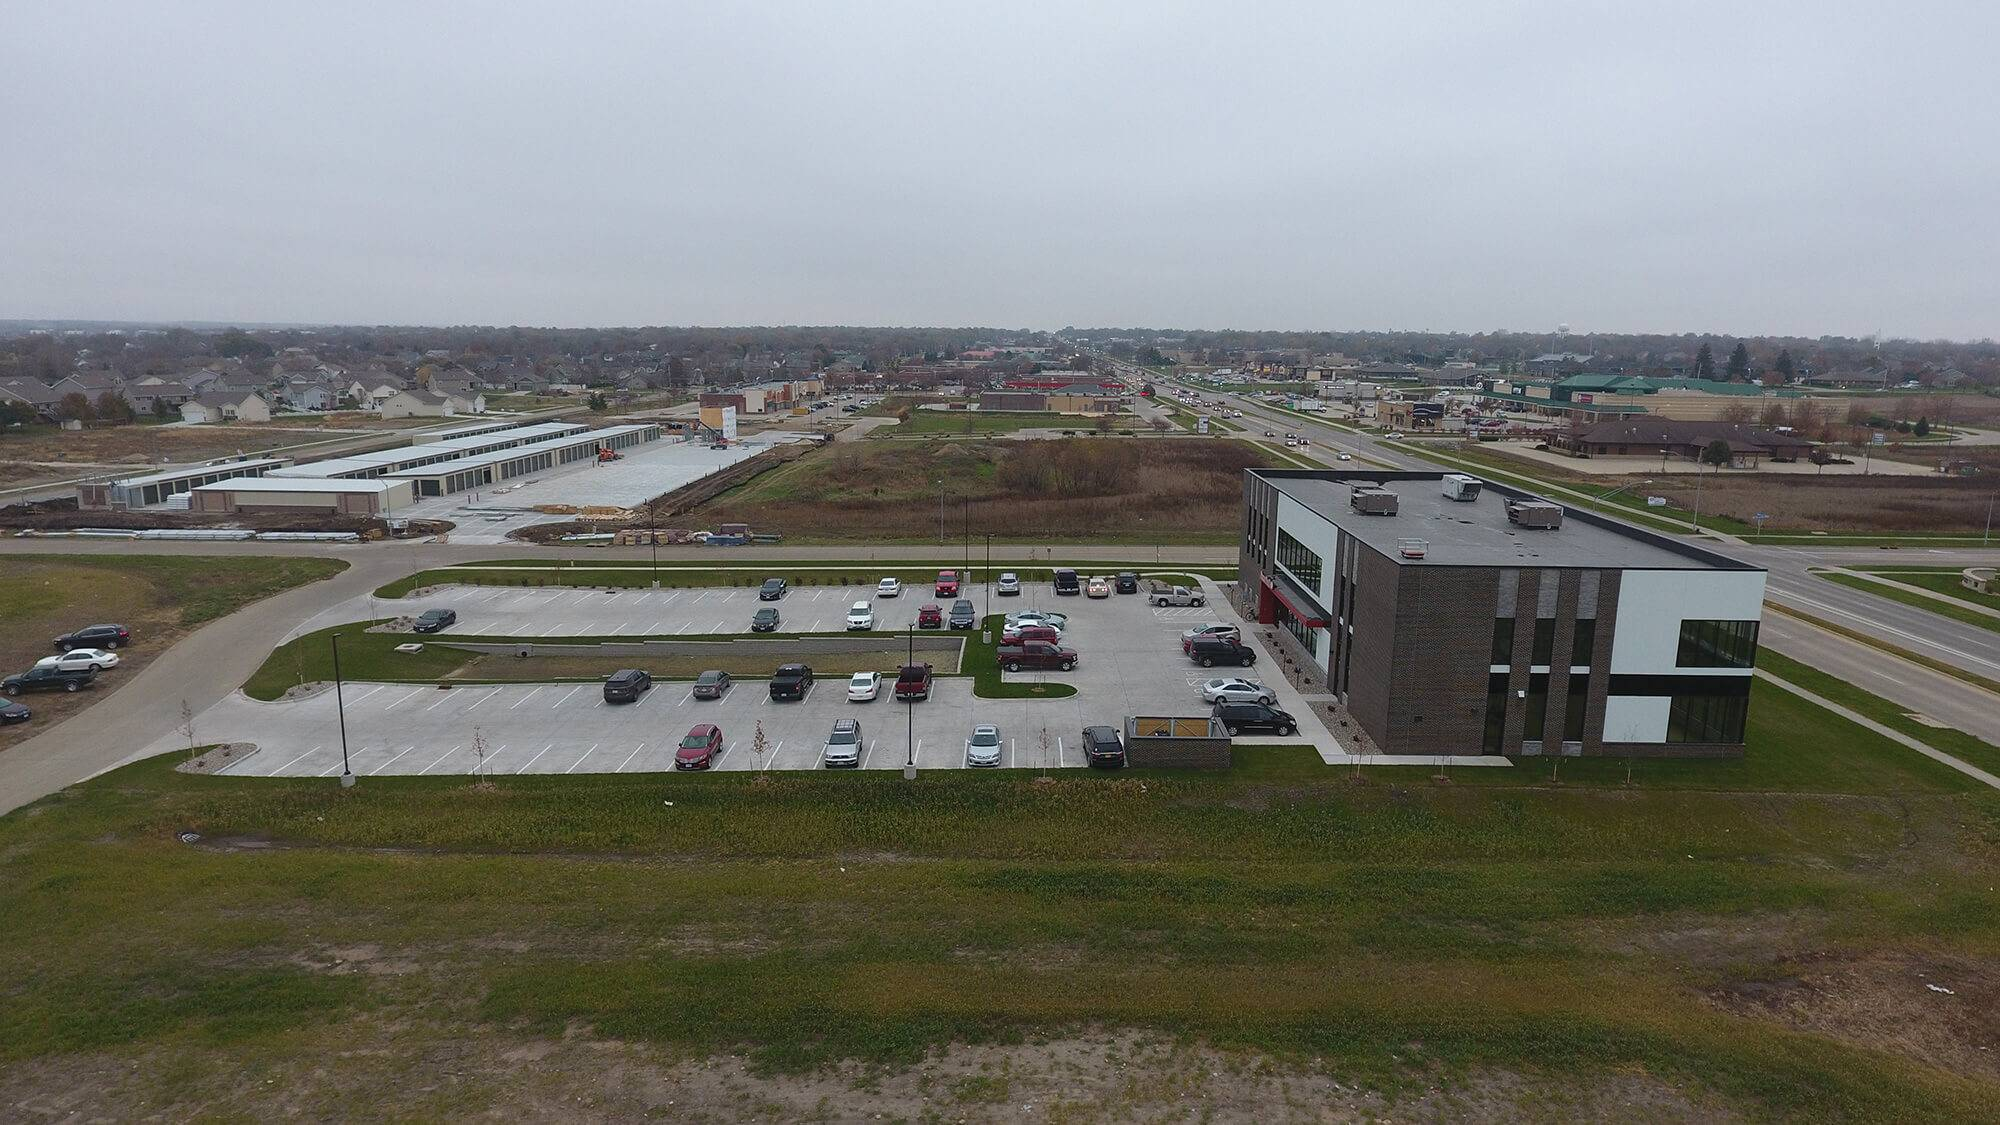 An aerial view of the grading done by Huber Grading at Fitness World in Ankeny, Iowa.